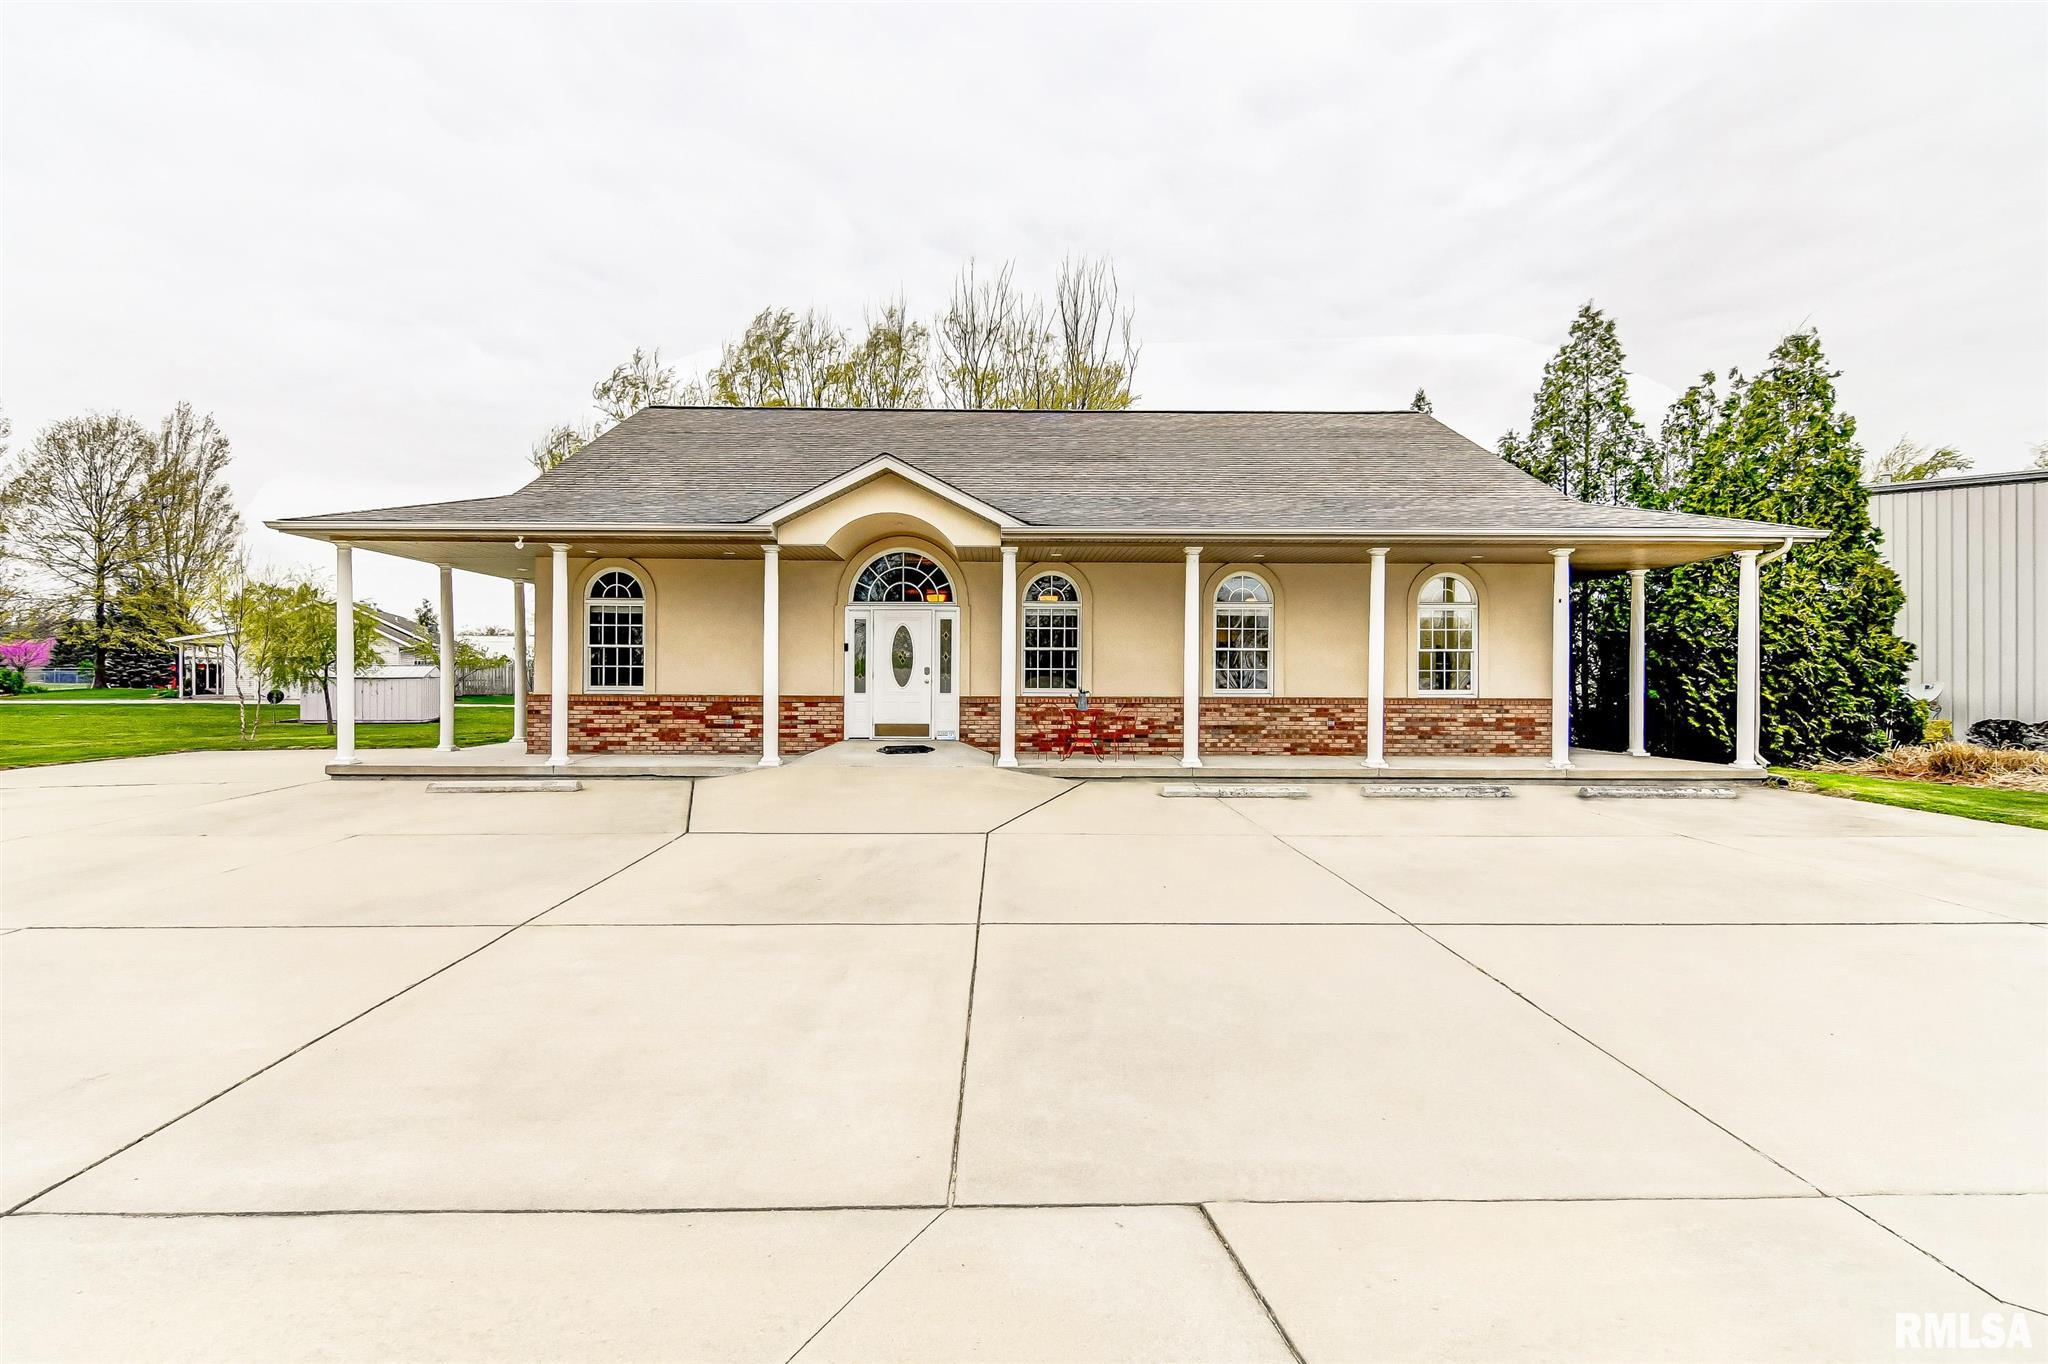 6765 Old Route 36 Property Photo - Riverton, IL real estate listing